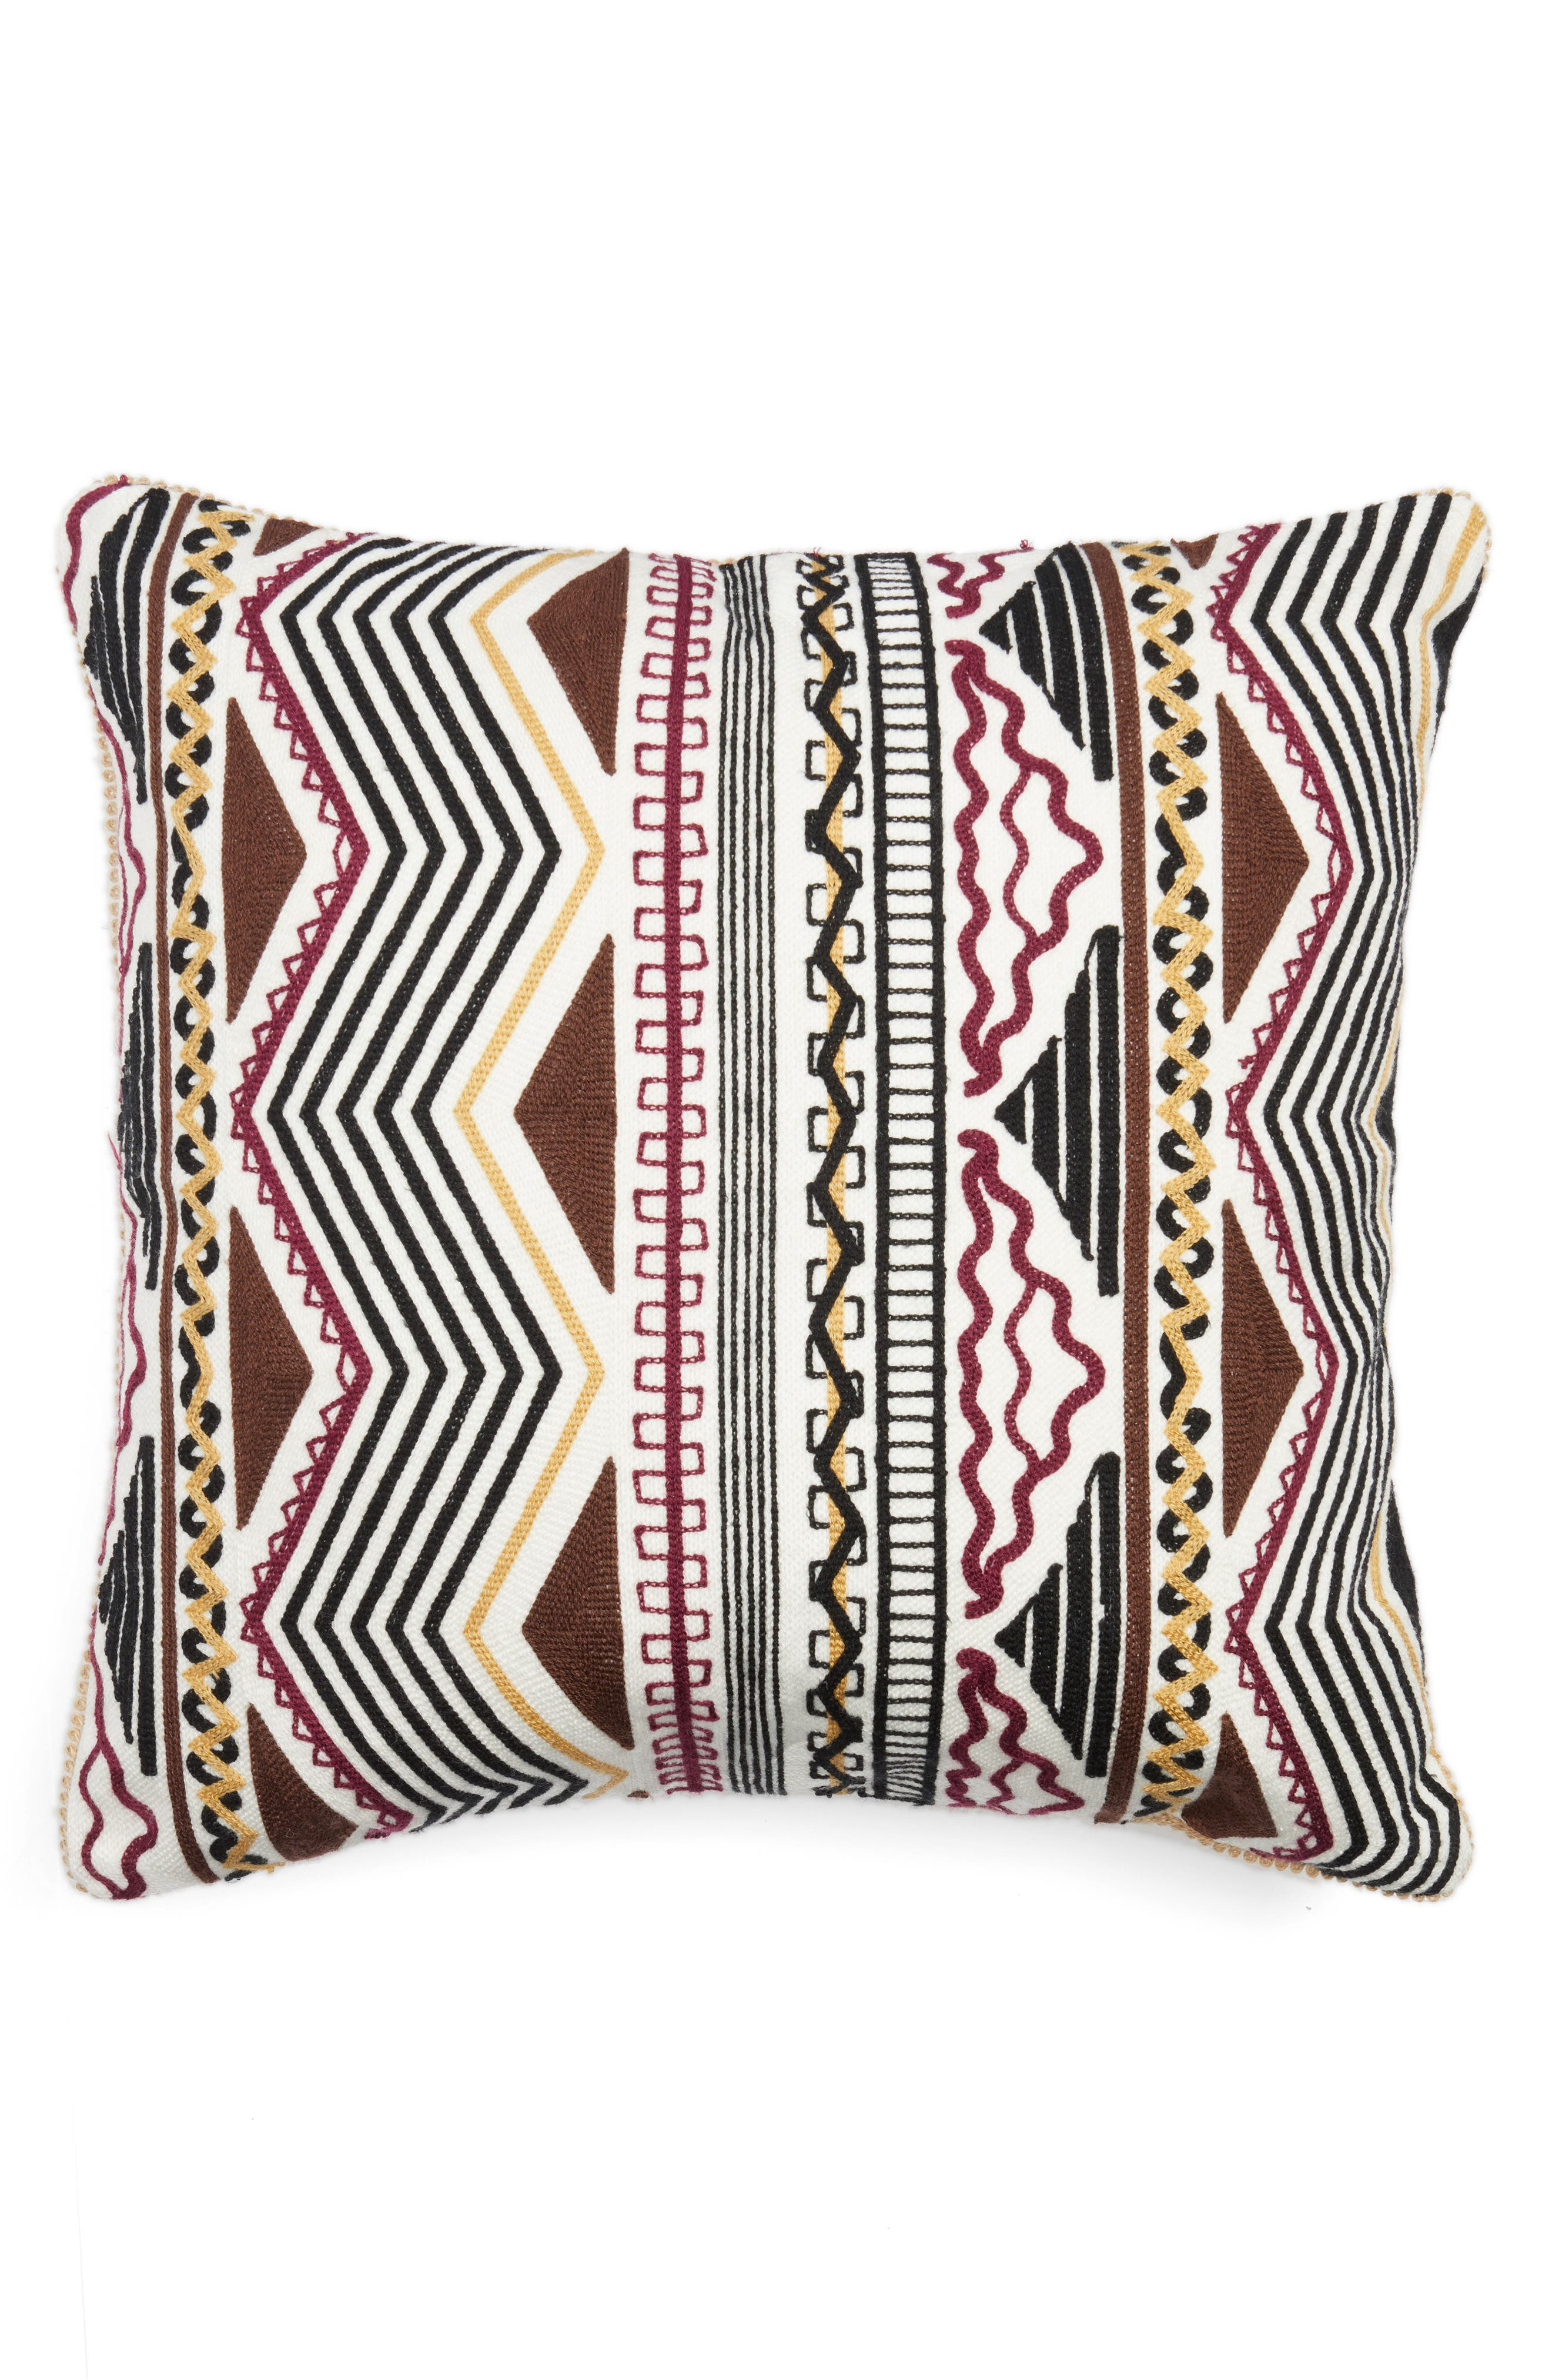 Zander Embroidered Pillow,                             Main thumbnail 1, color,                             Multi